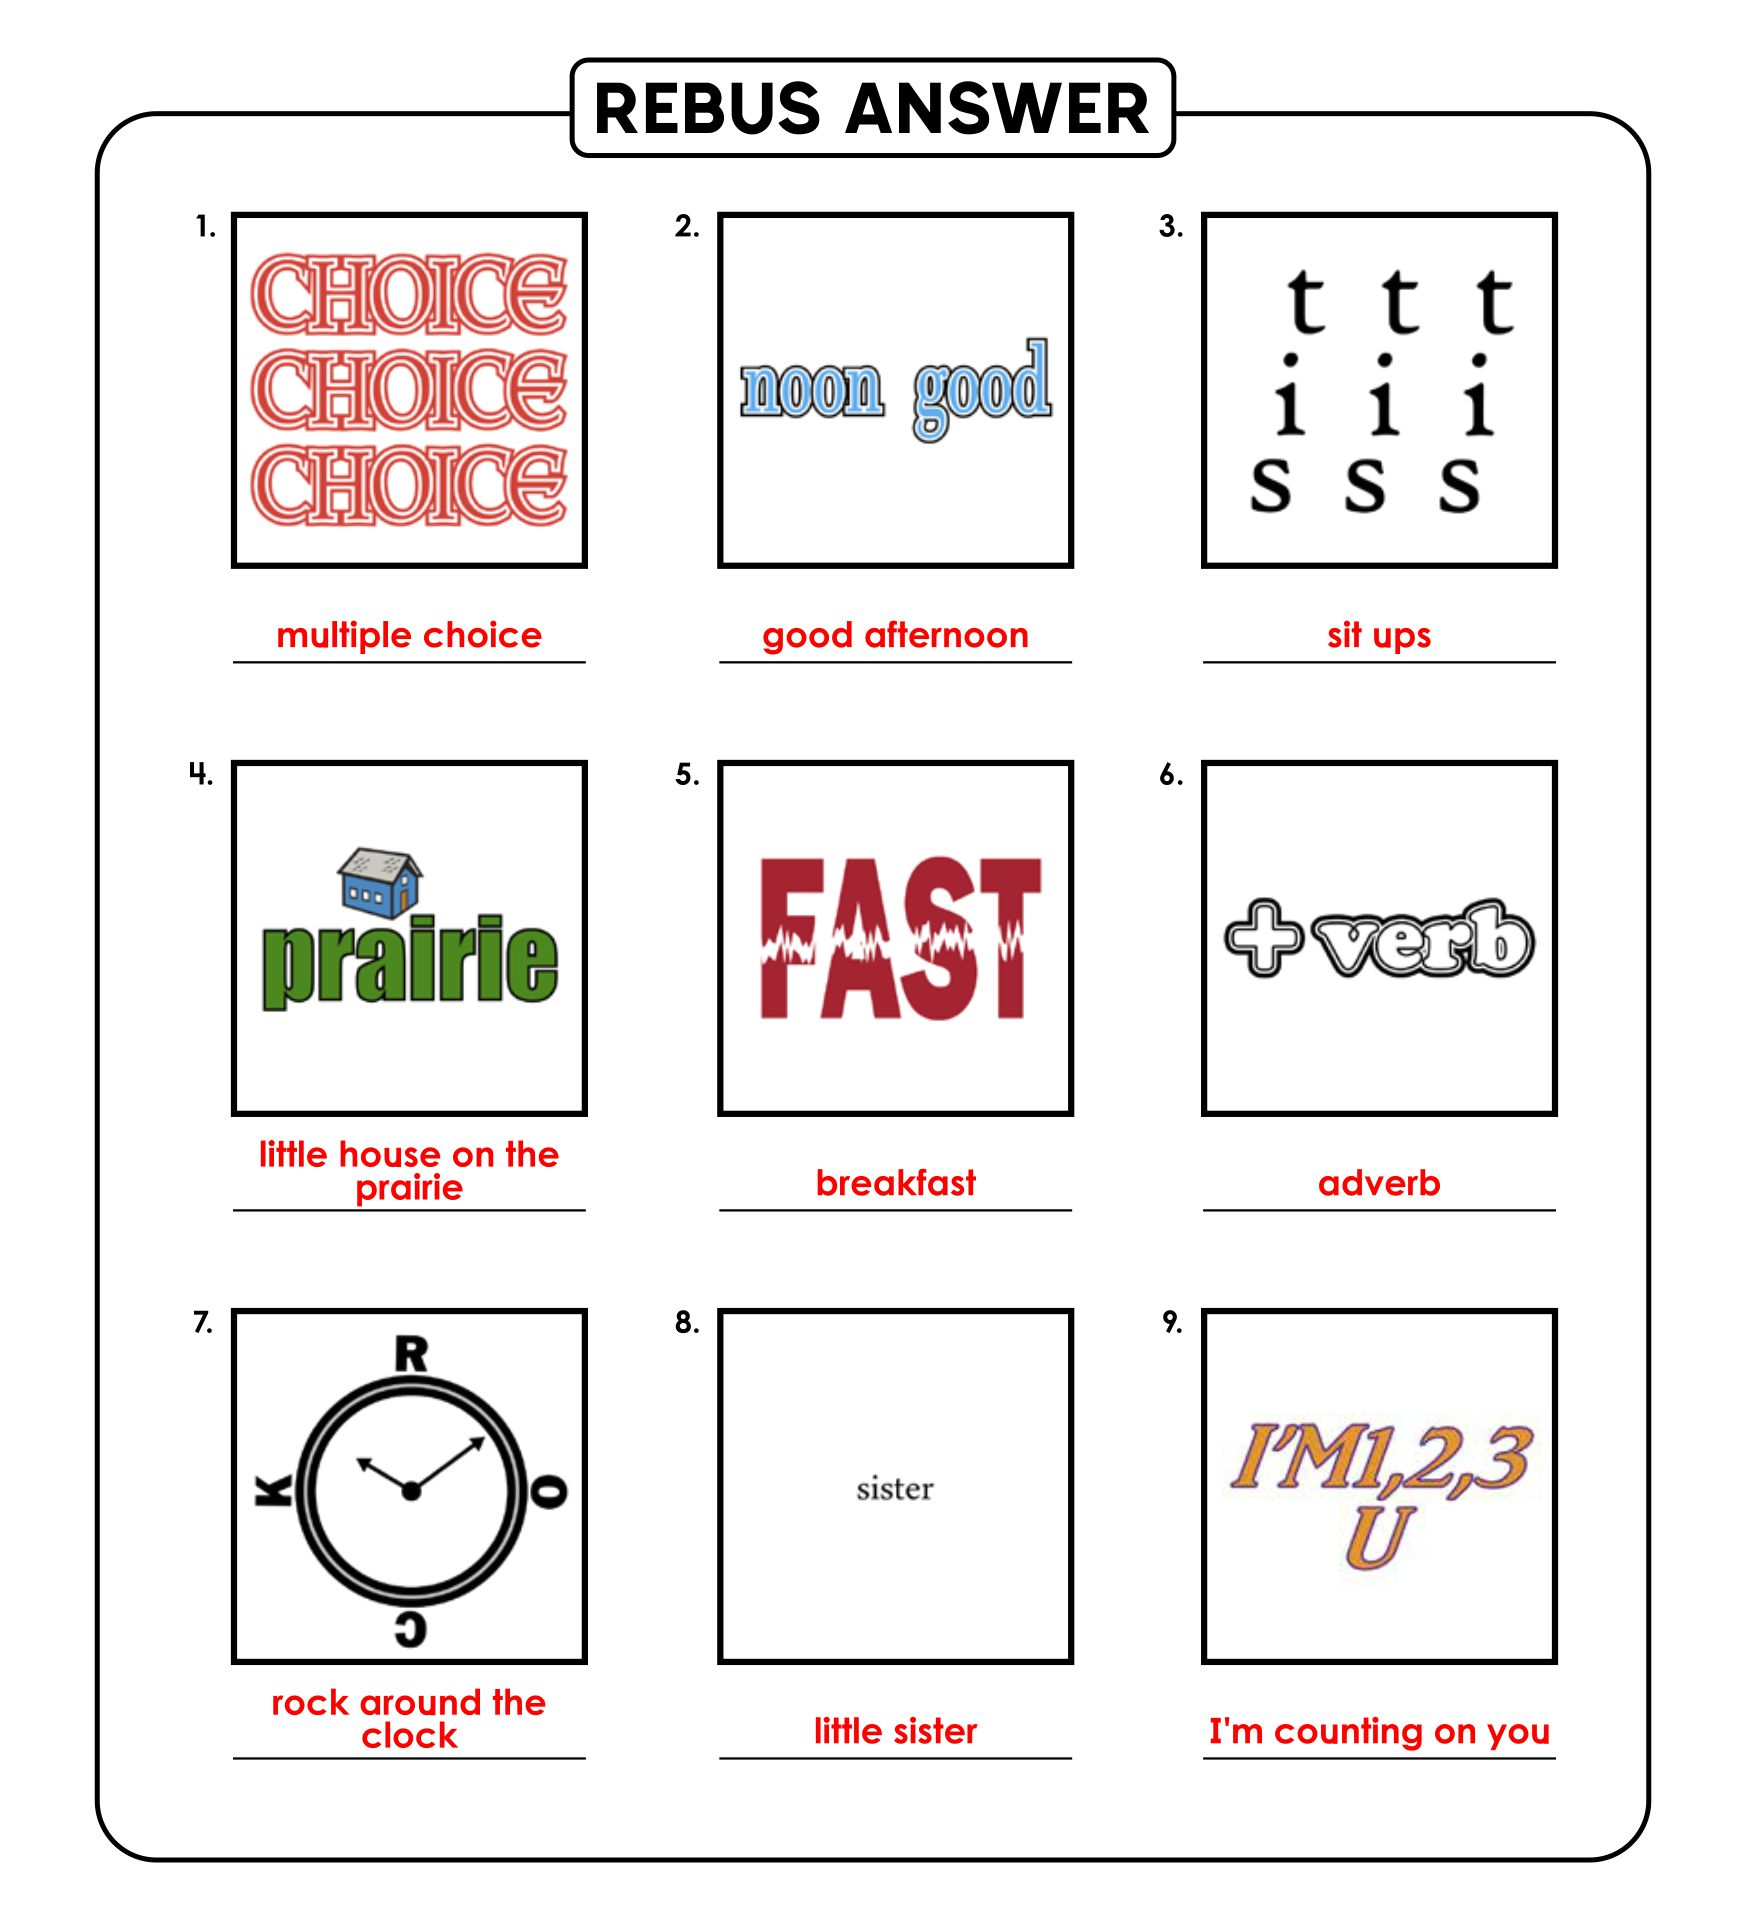 7 Images of Printable Rebus Puzzles With Answers